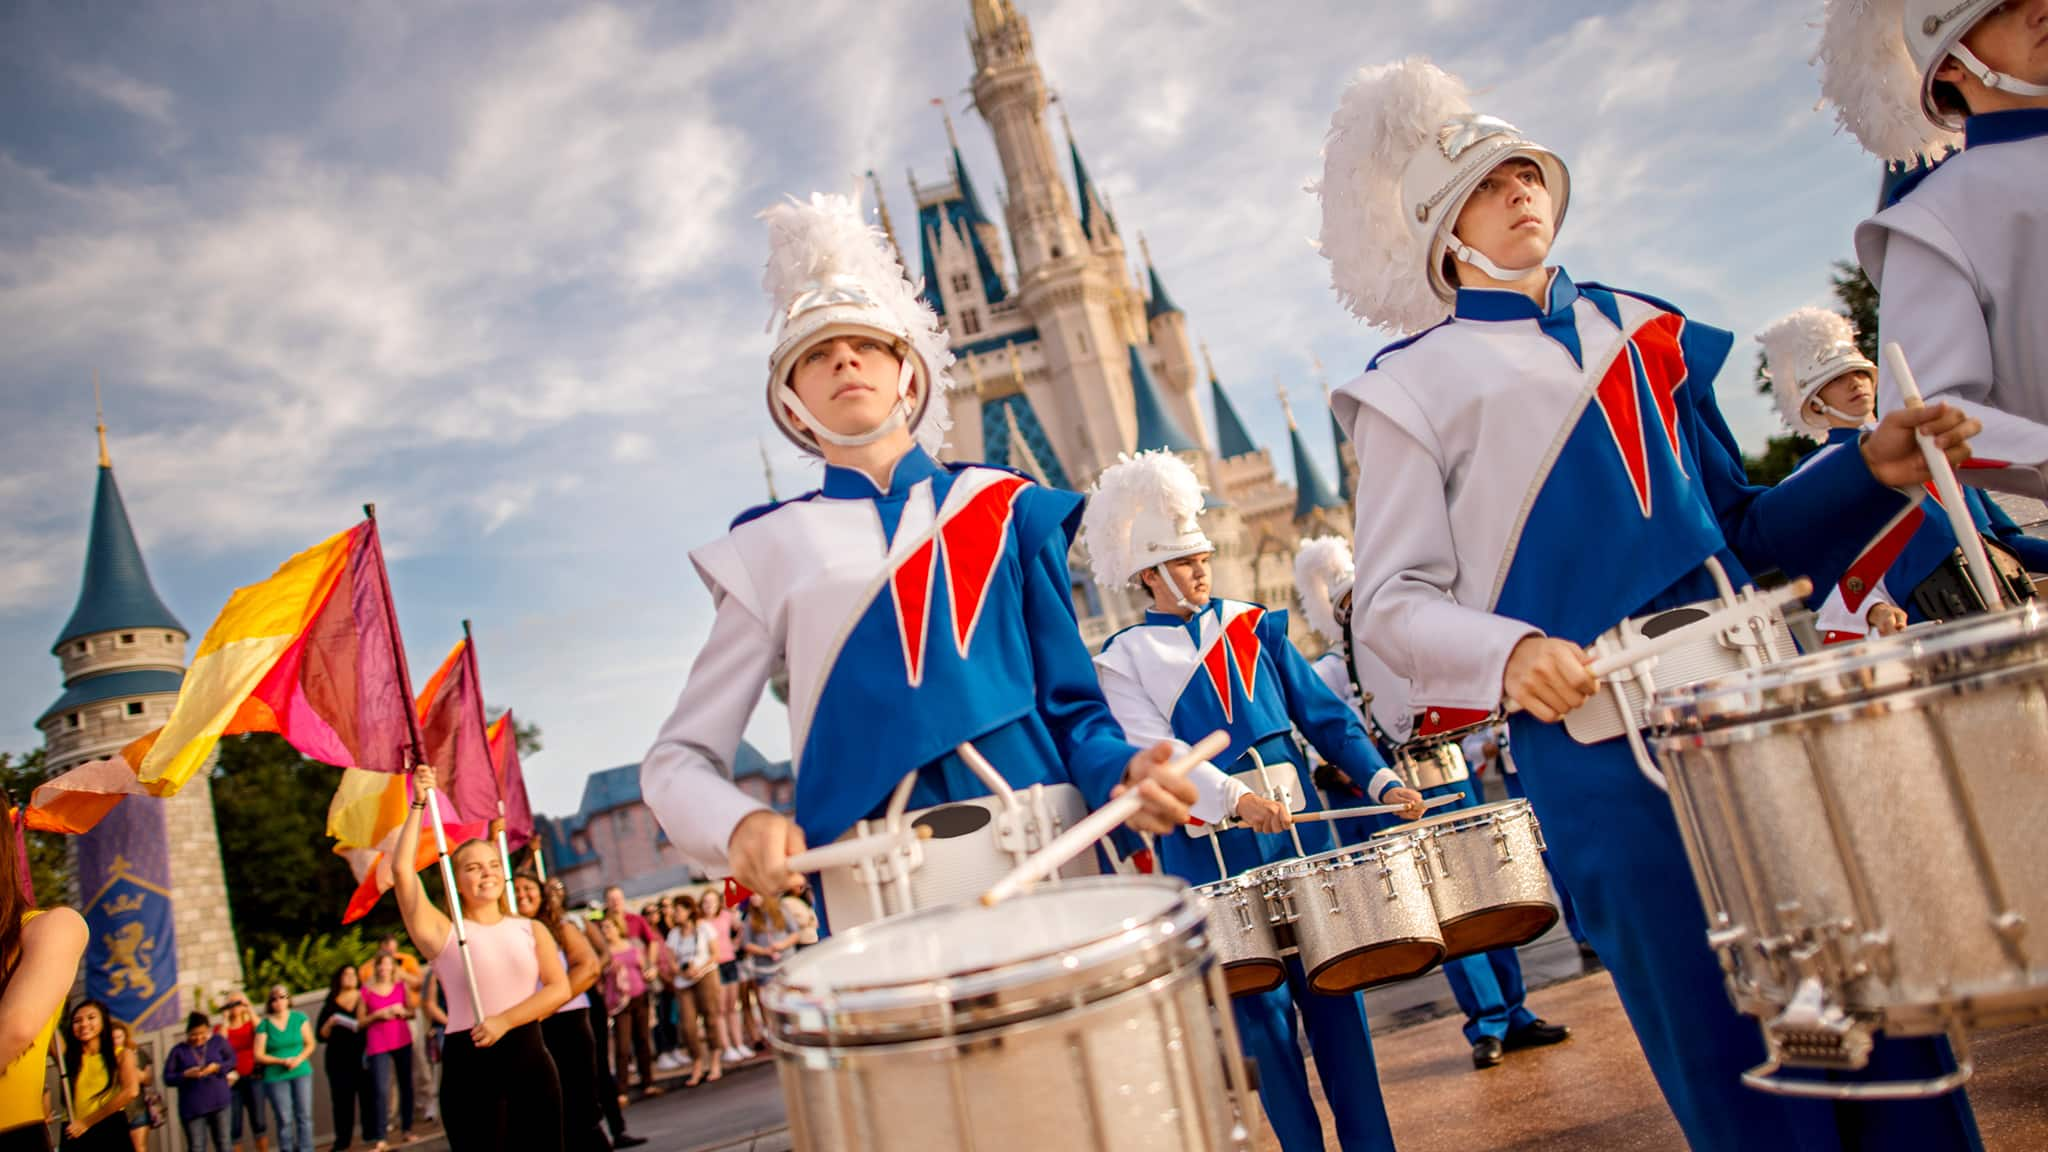 Young performers wearing uniforms playing drums and carrying flags while performing for Guests